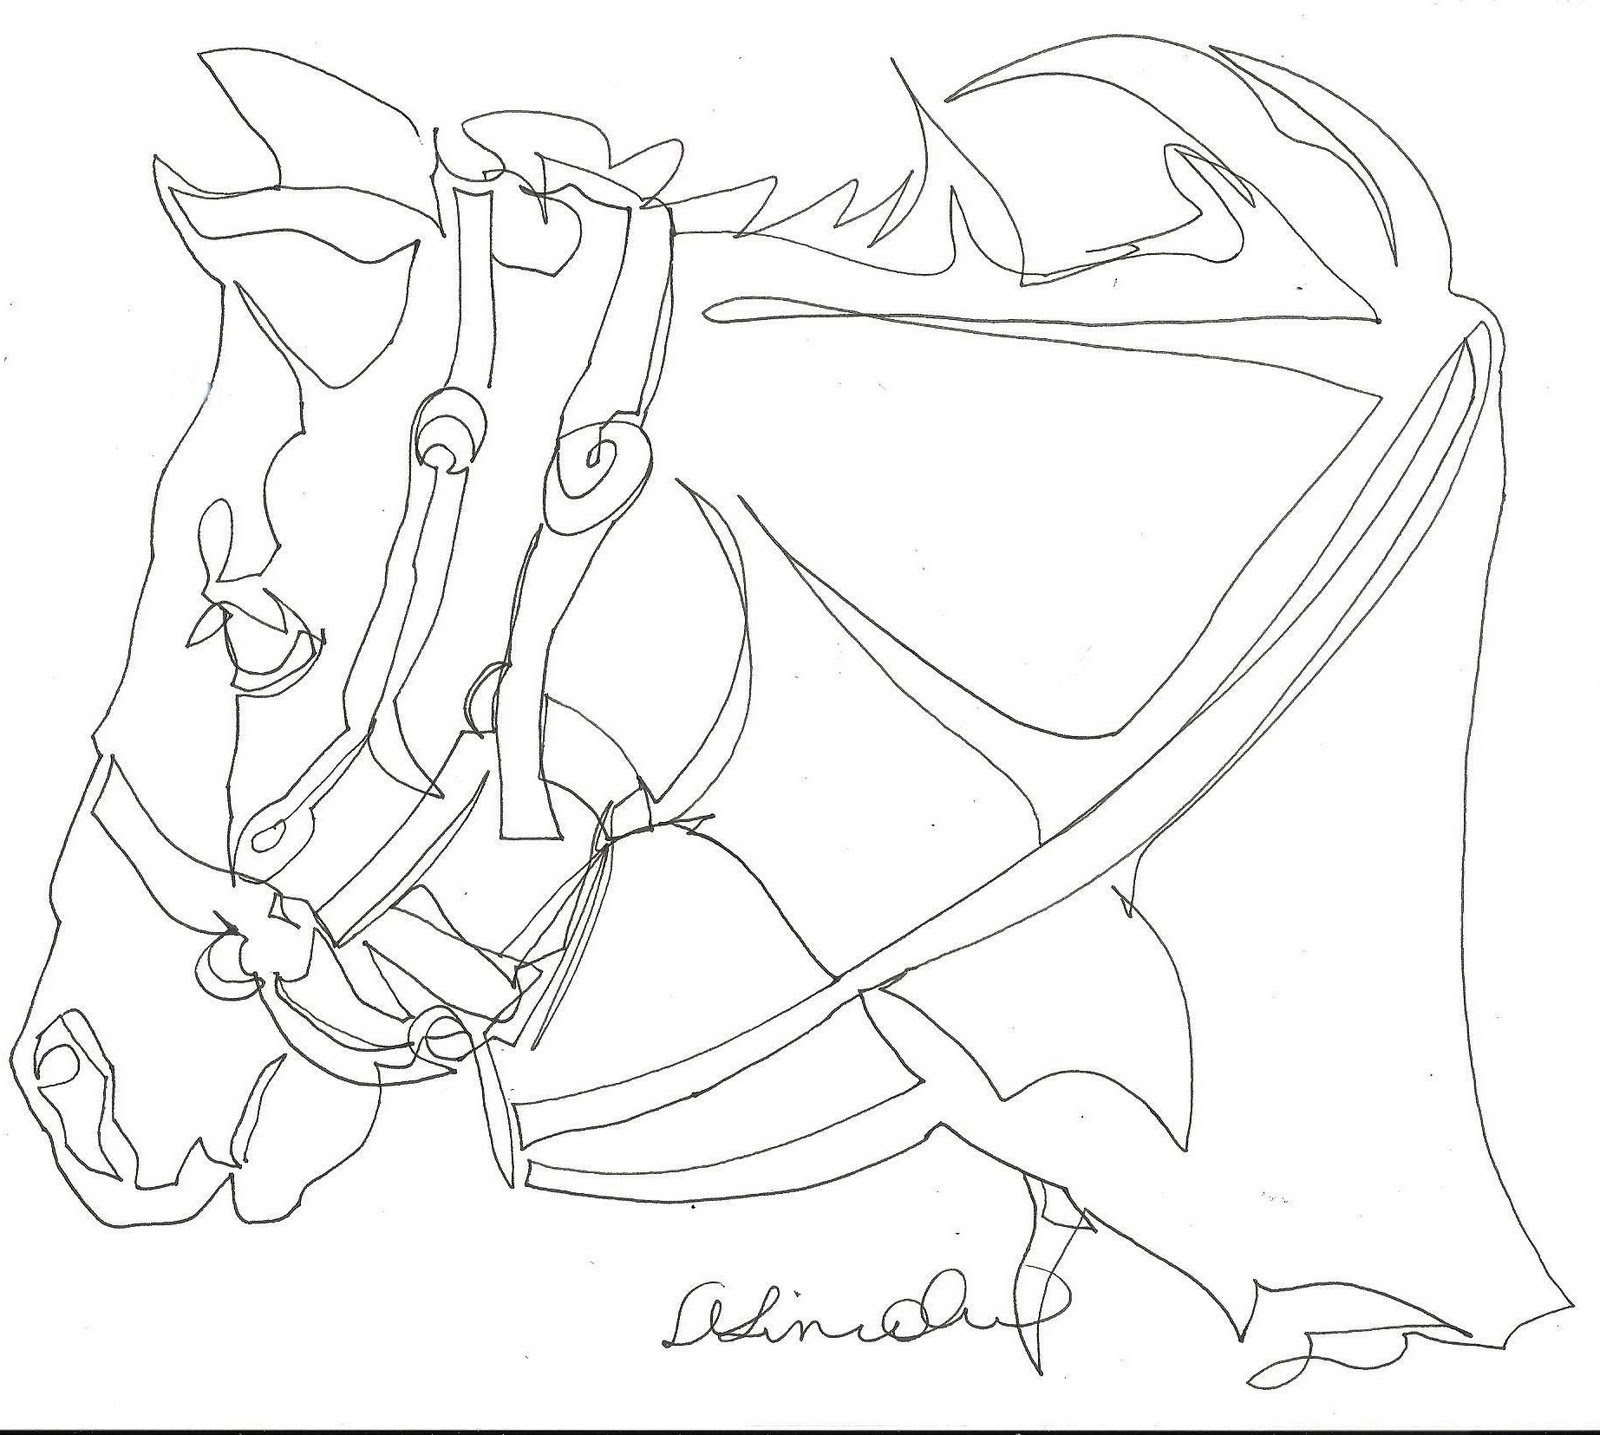 Line Drawings of Horses Heads Horse Head Continuous Line